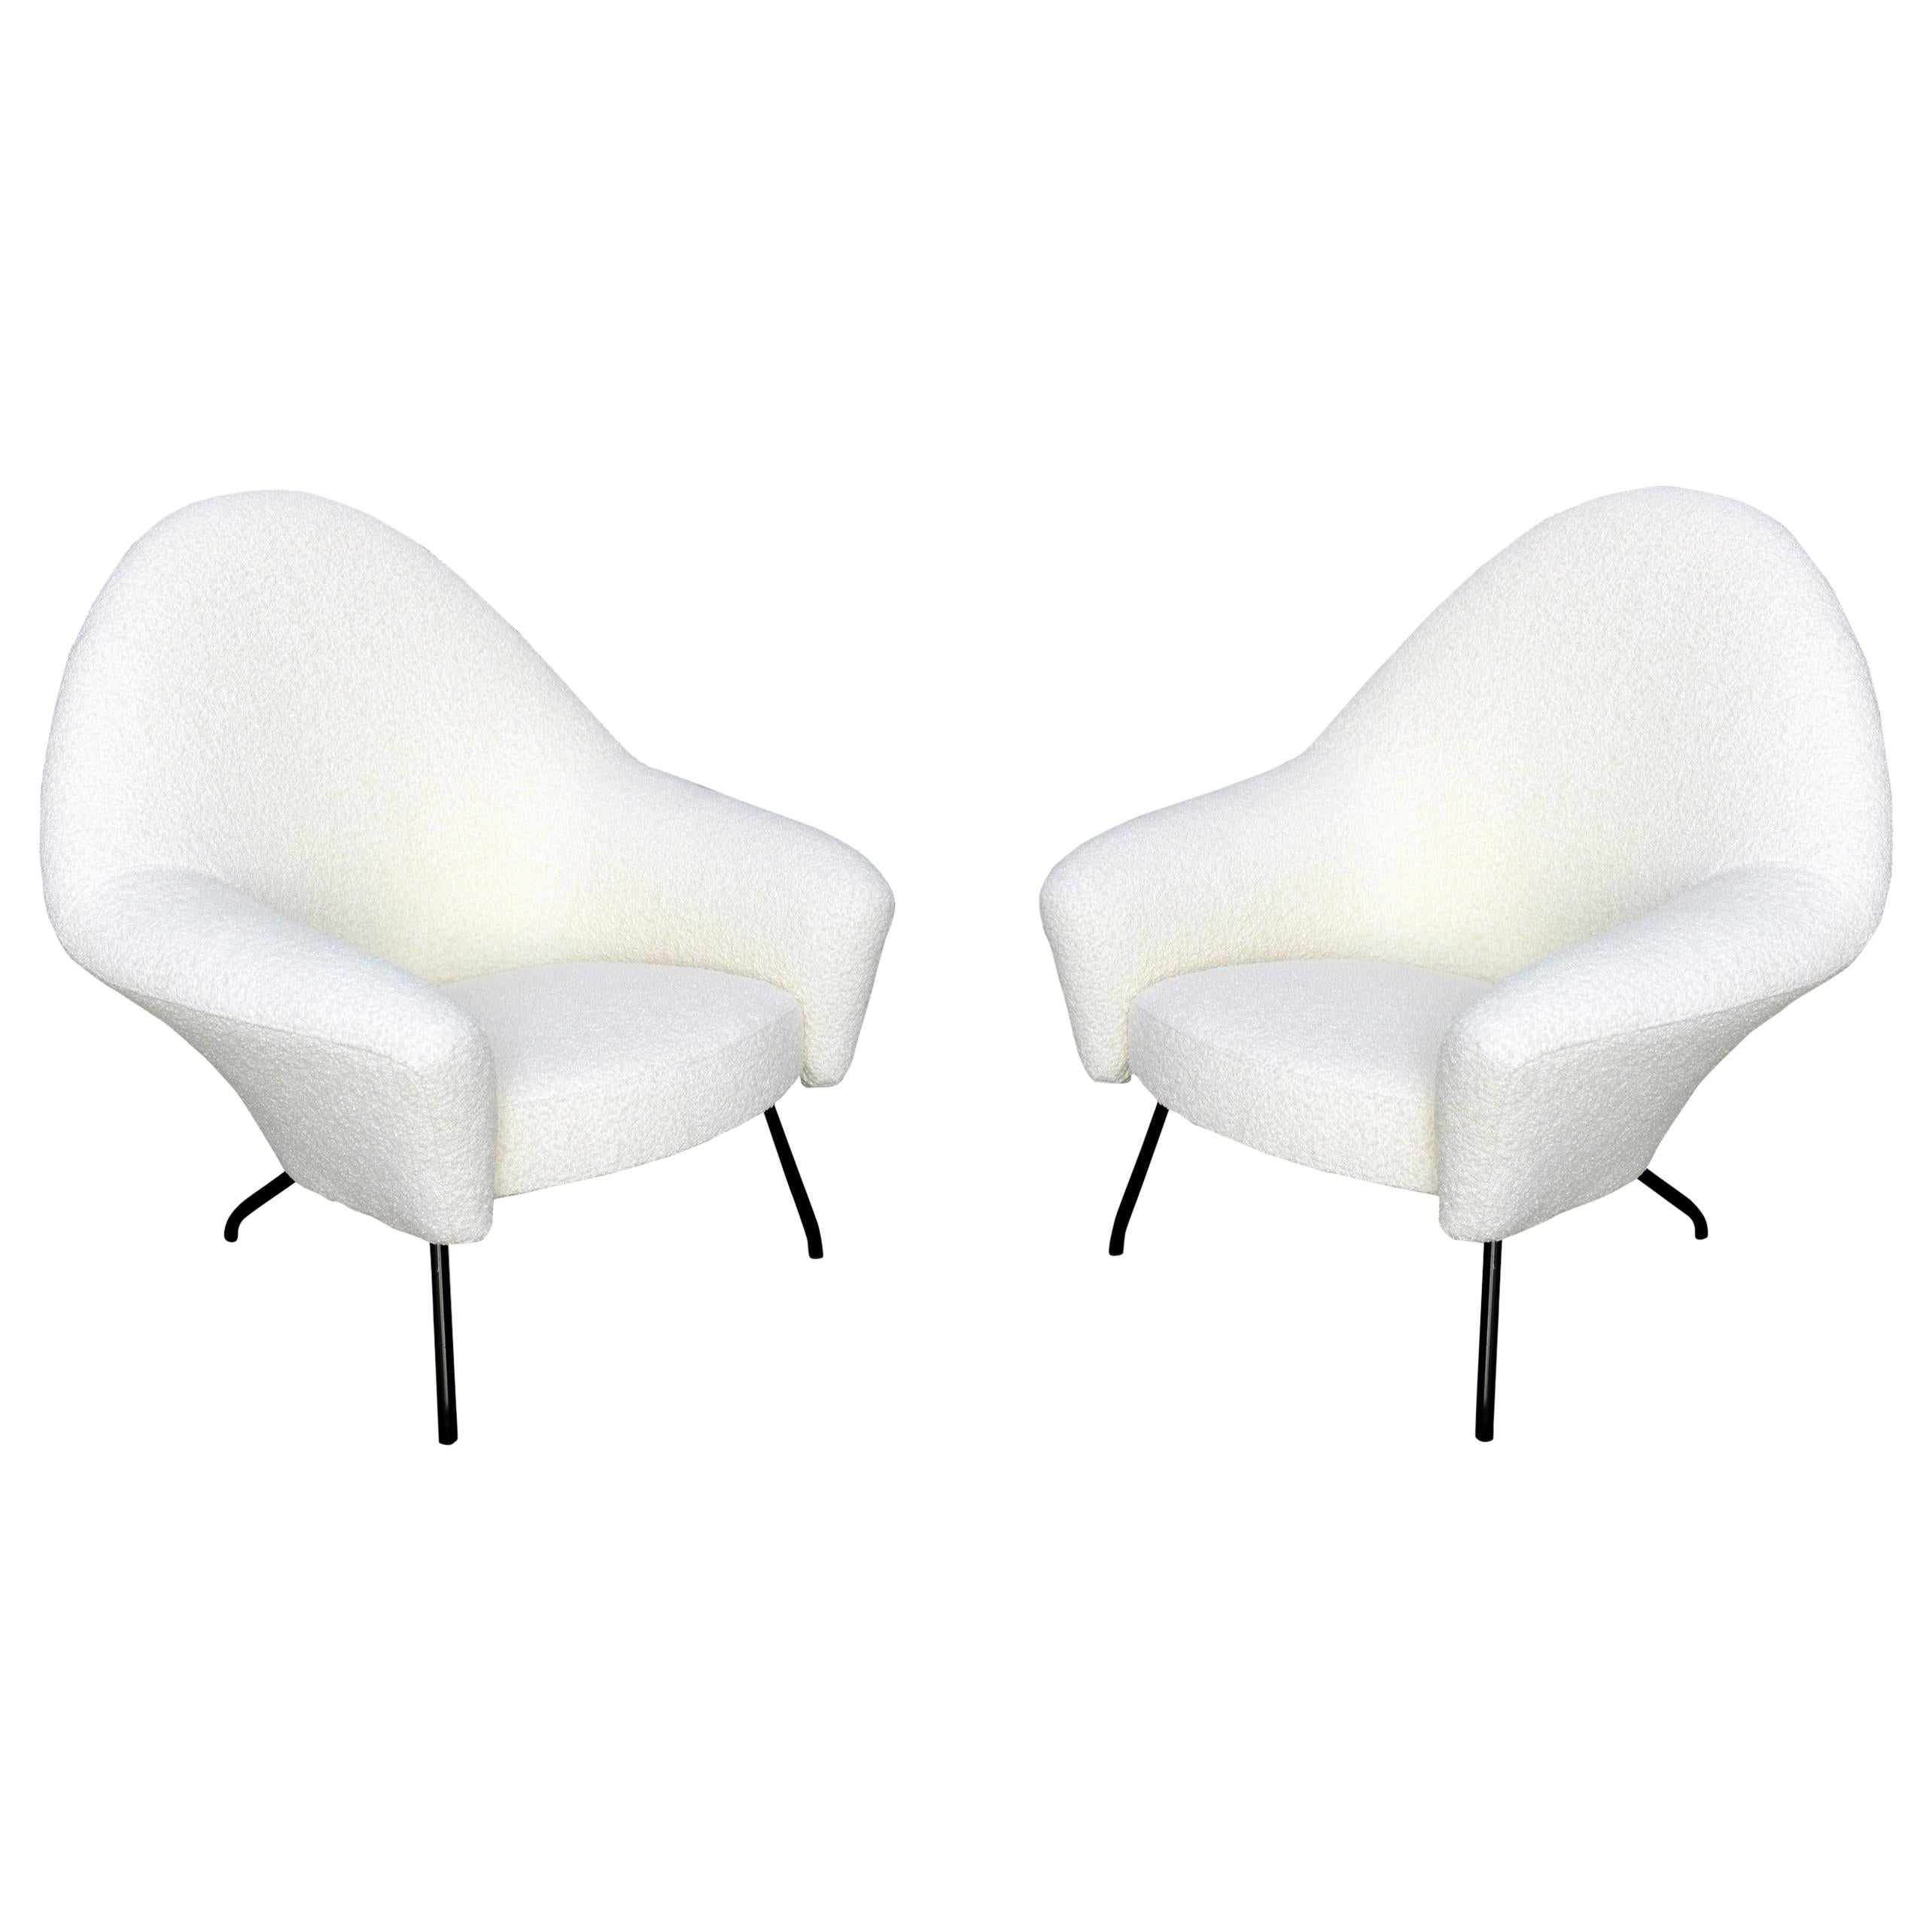 Pair of Armchairs, 770 Model, Joseph-André Motte for Steiner, circa 1958